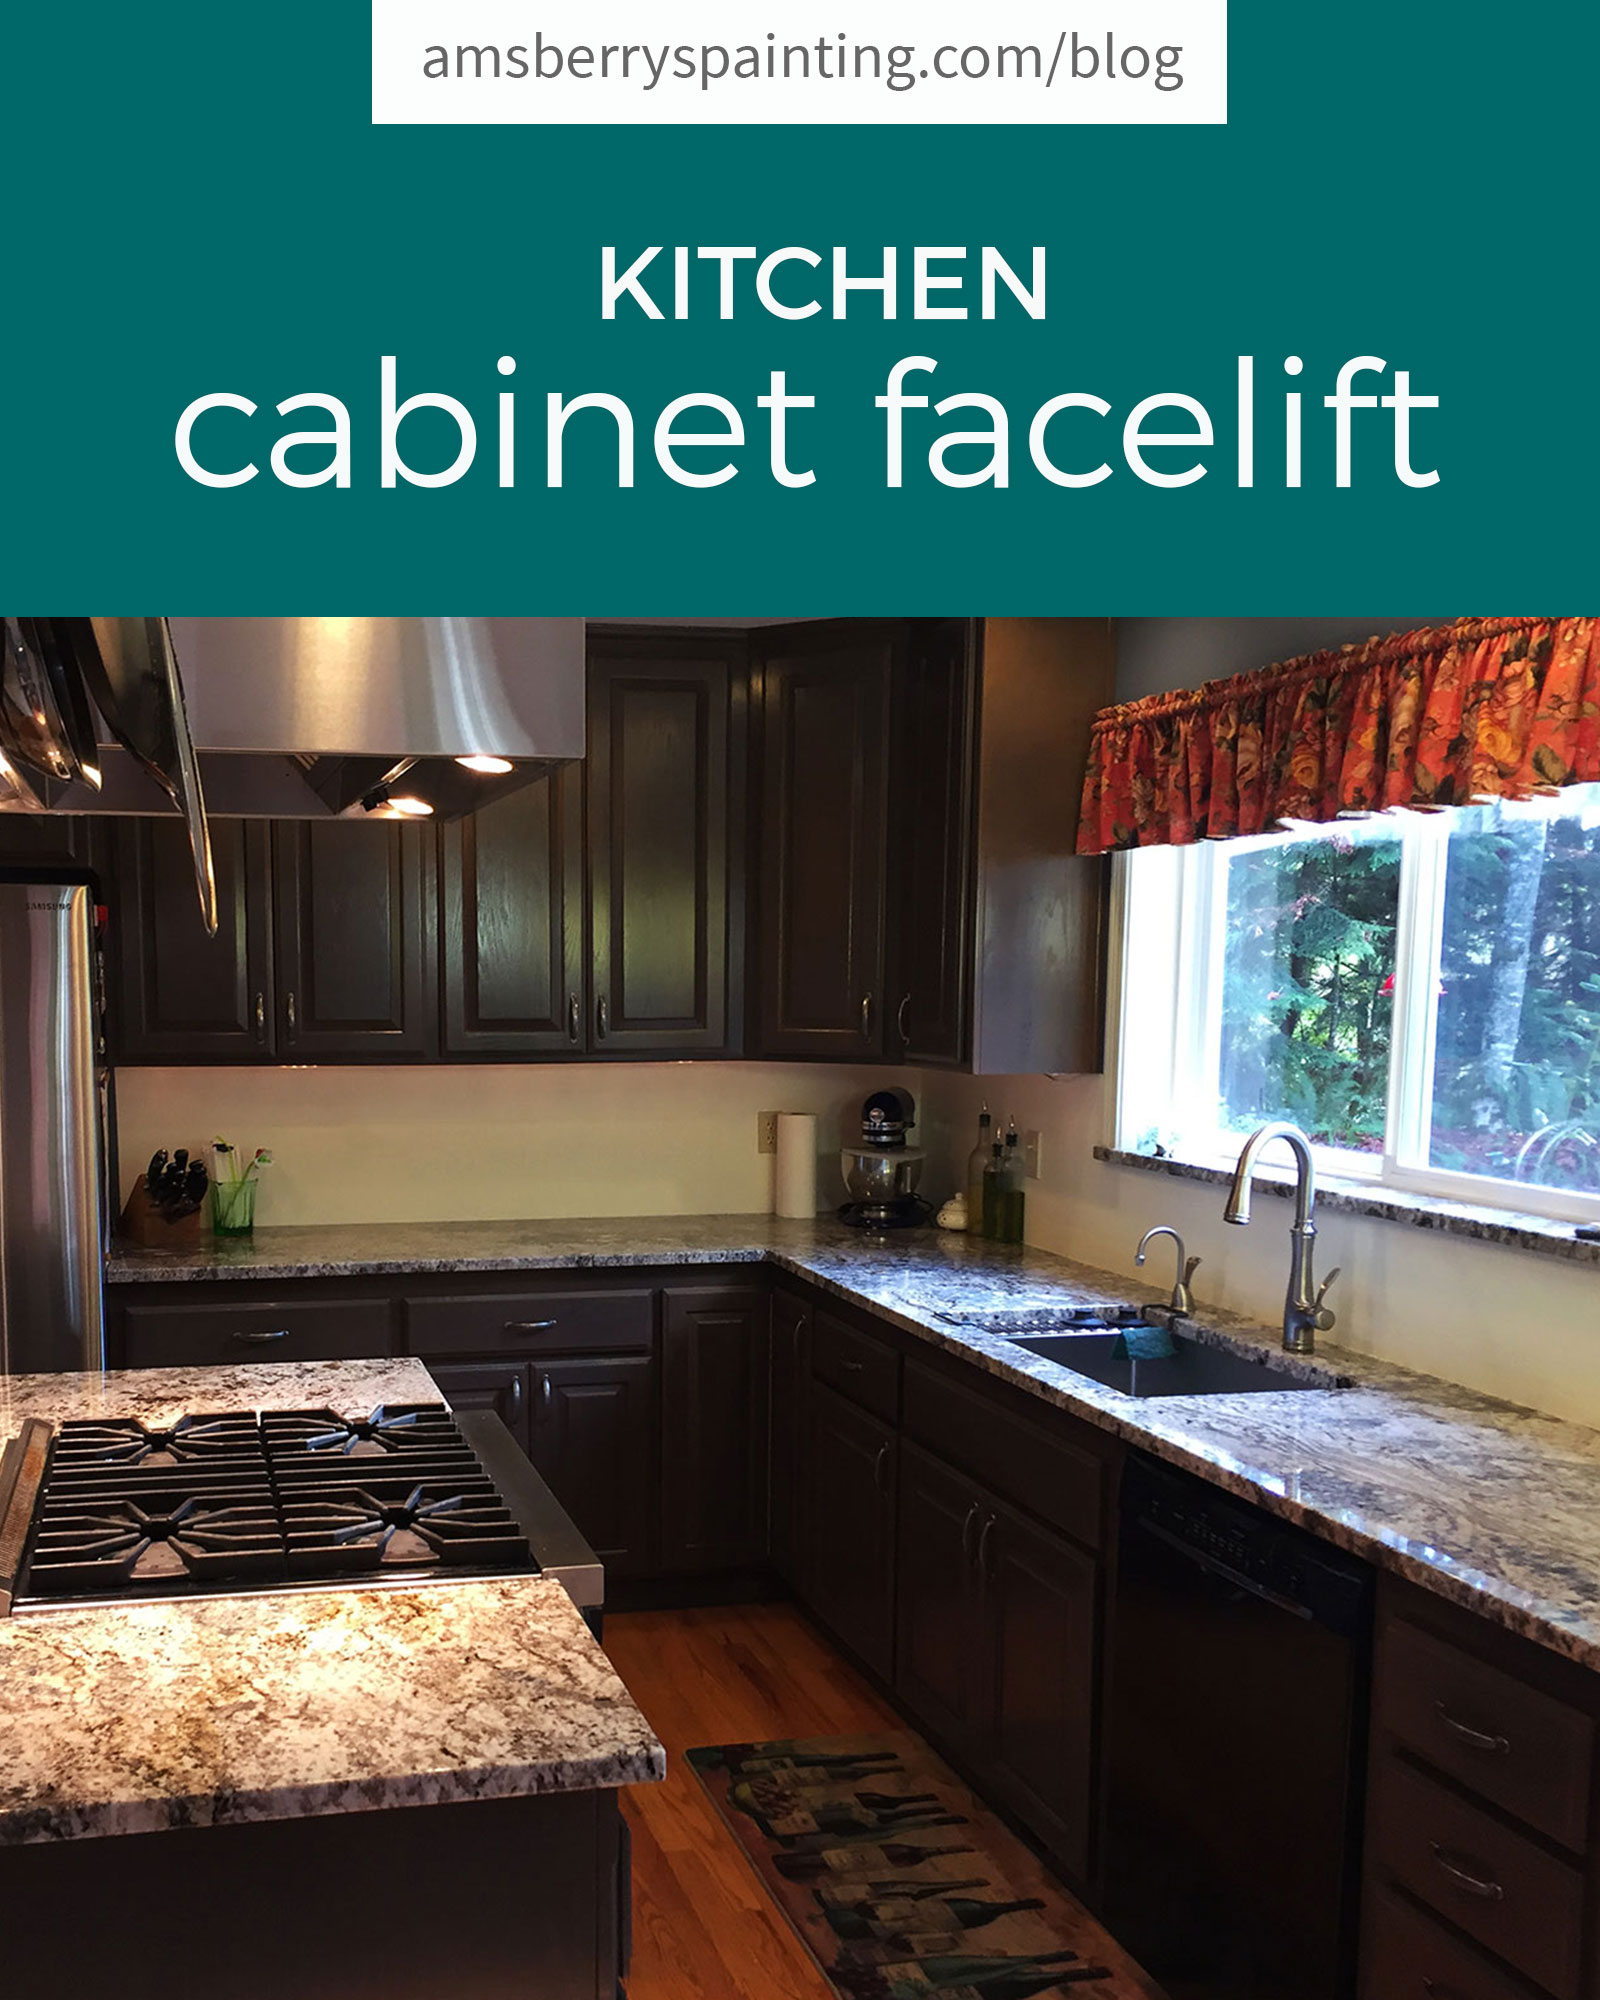 facelift kitchen cabinets